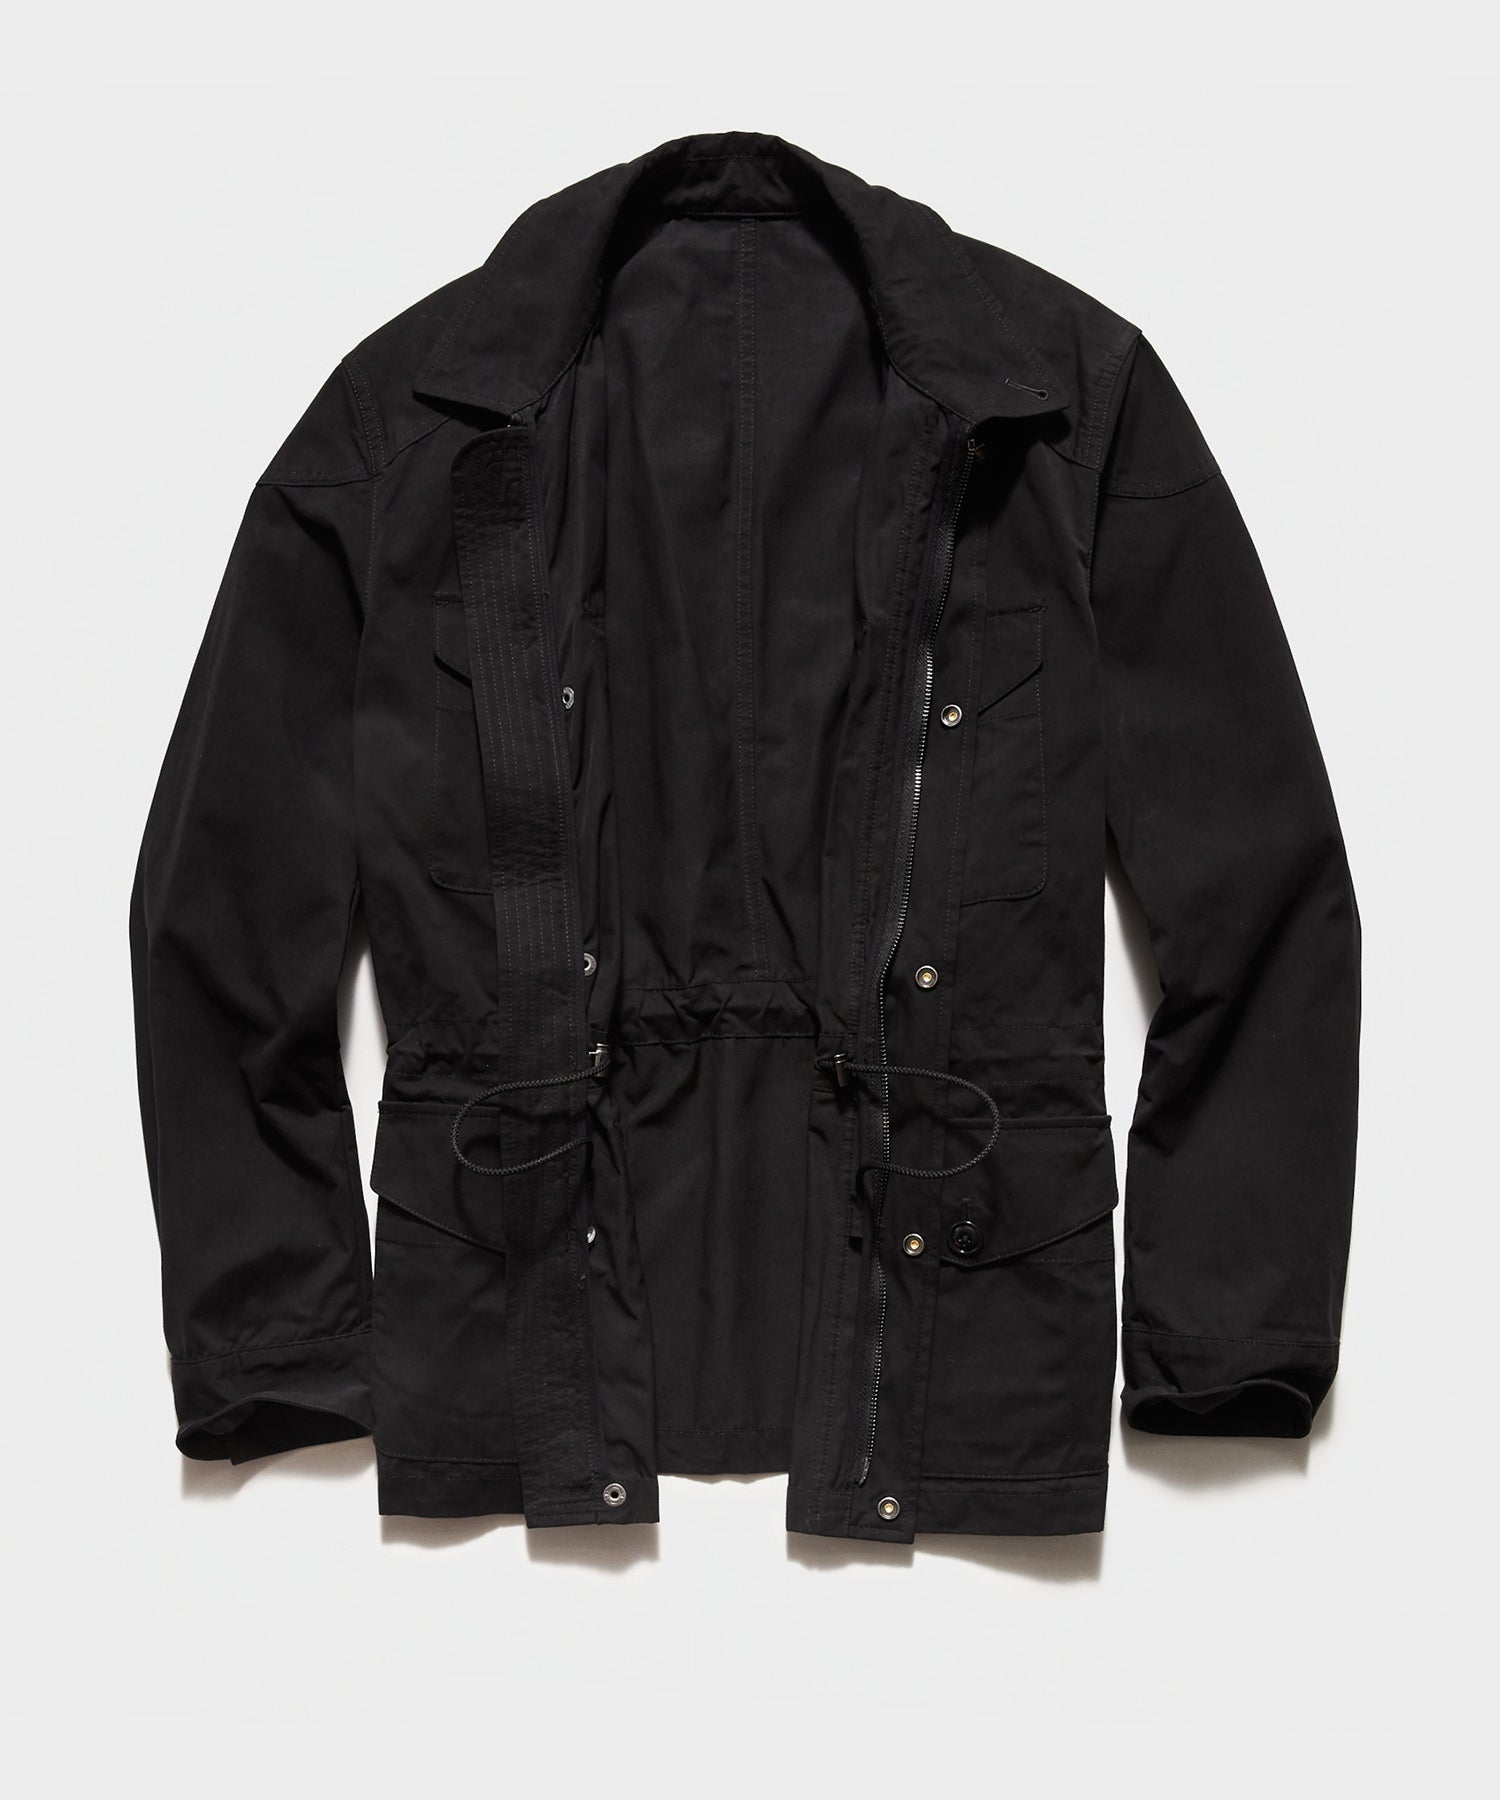 Todd Snyder Made in New York Field Jacket